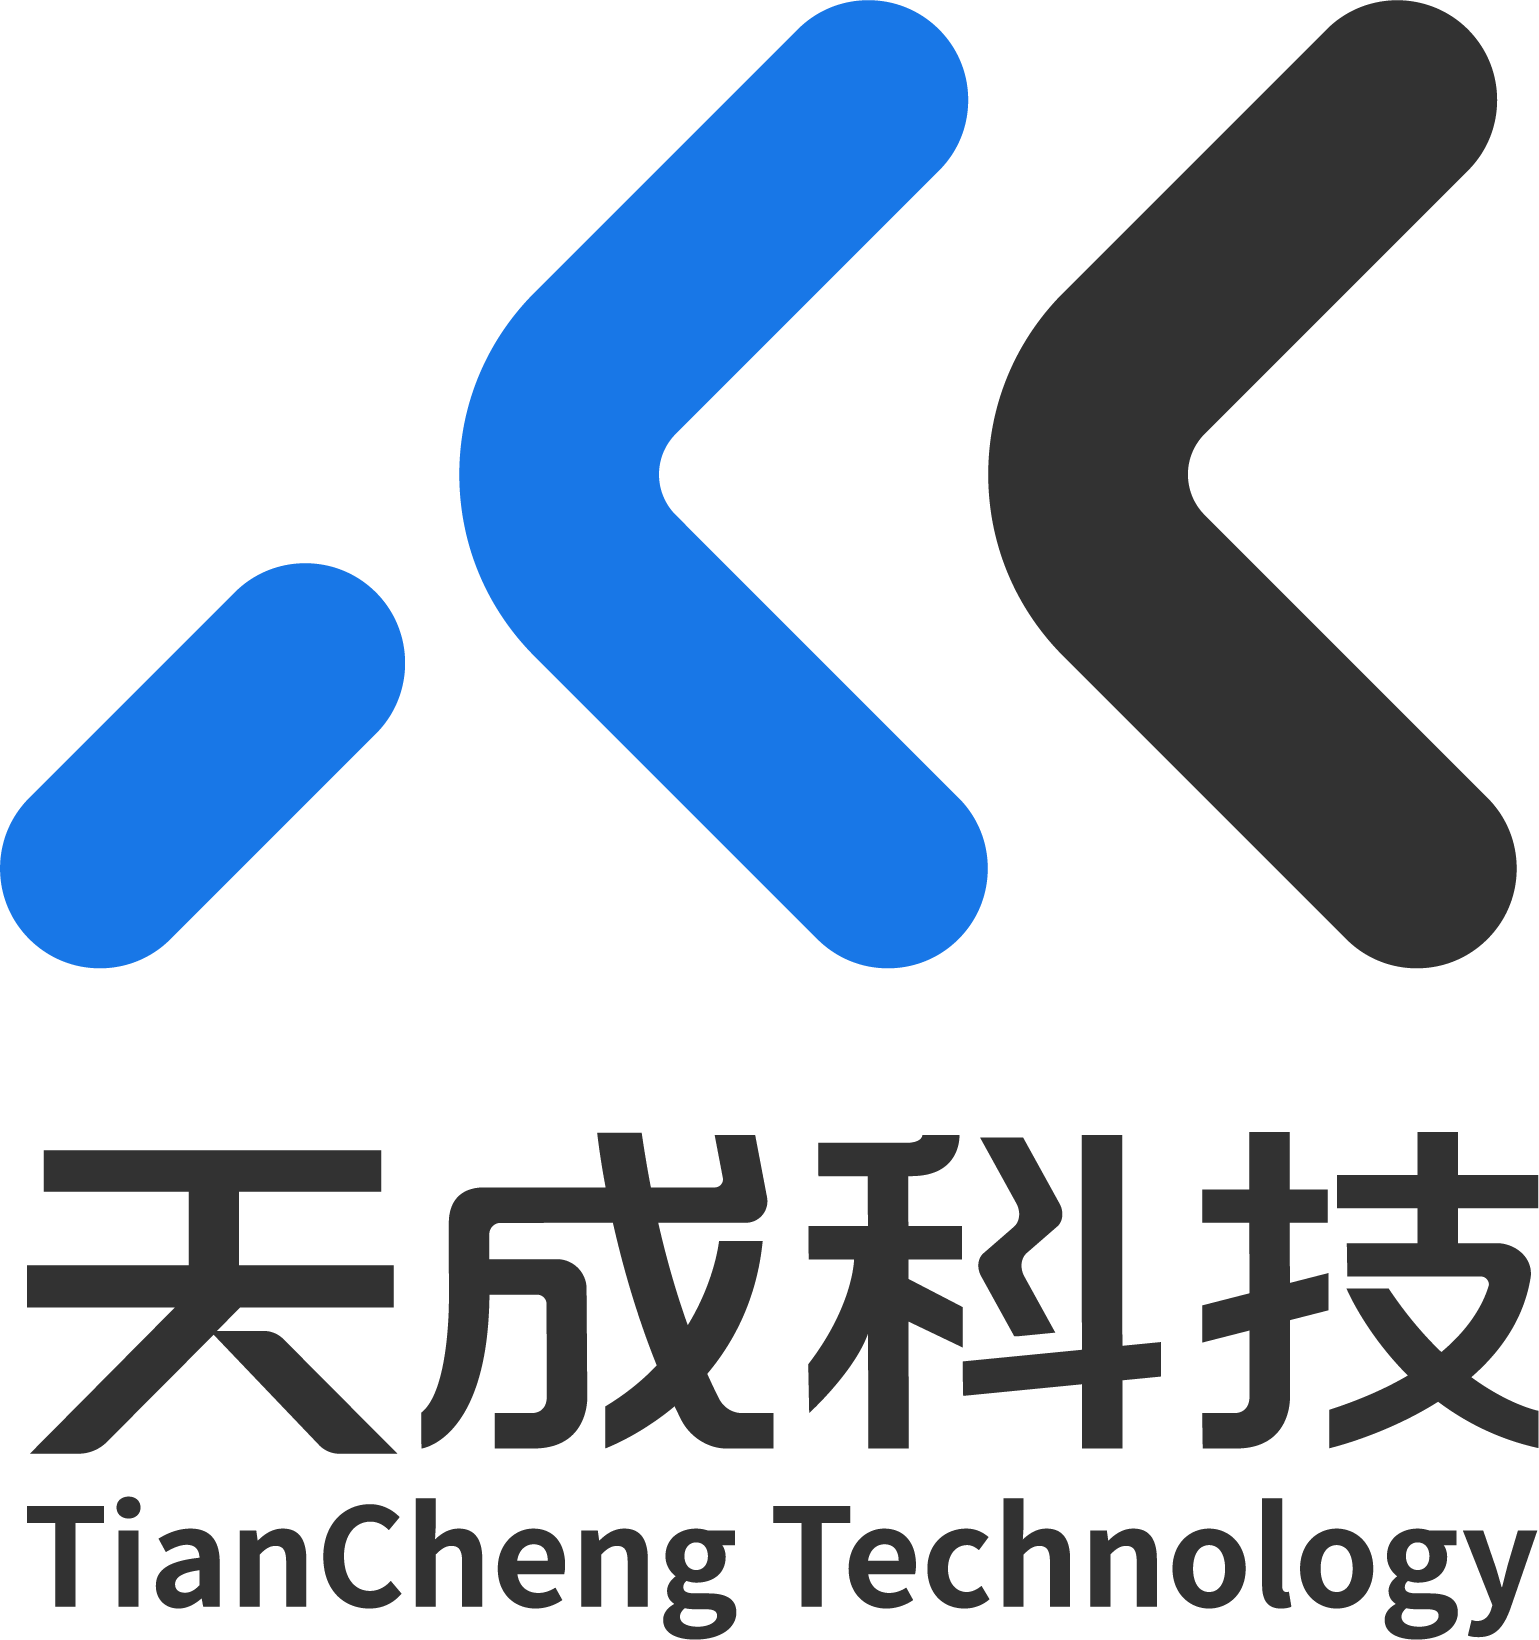 tiangcheng Technology